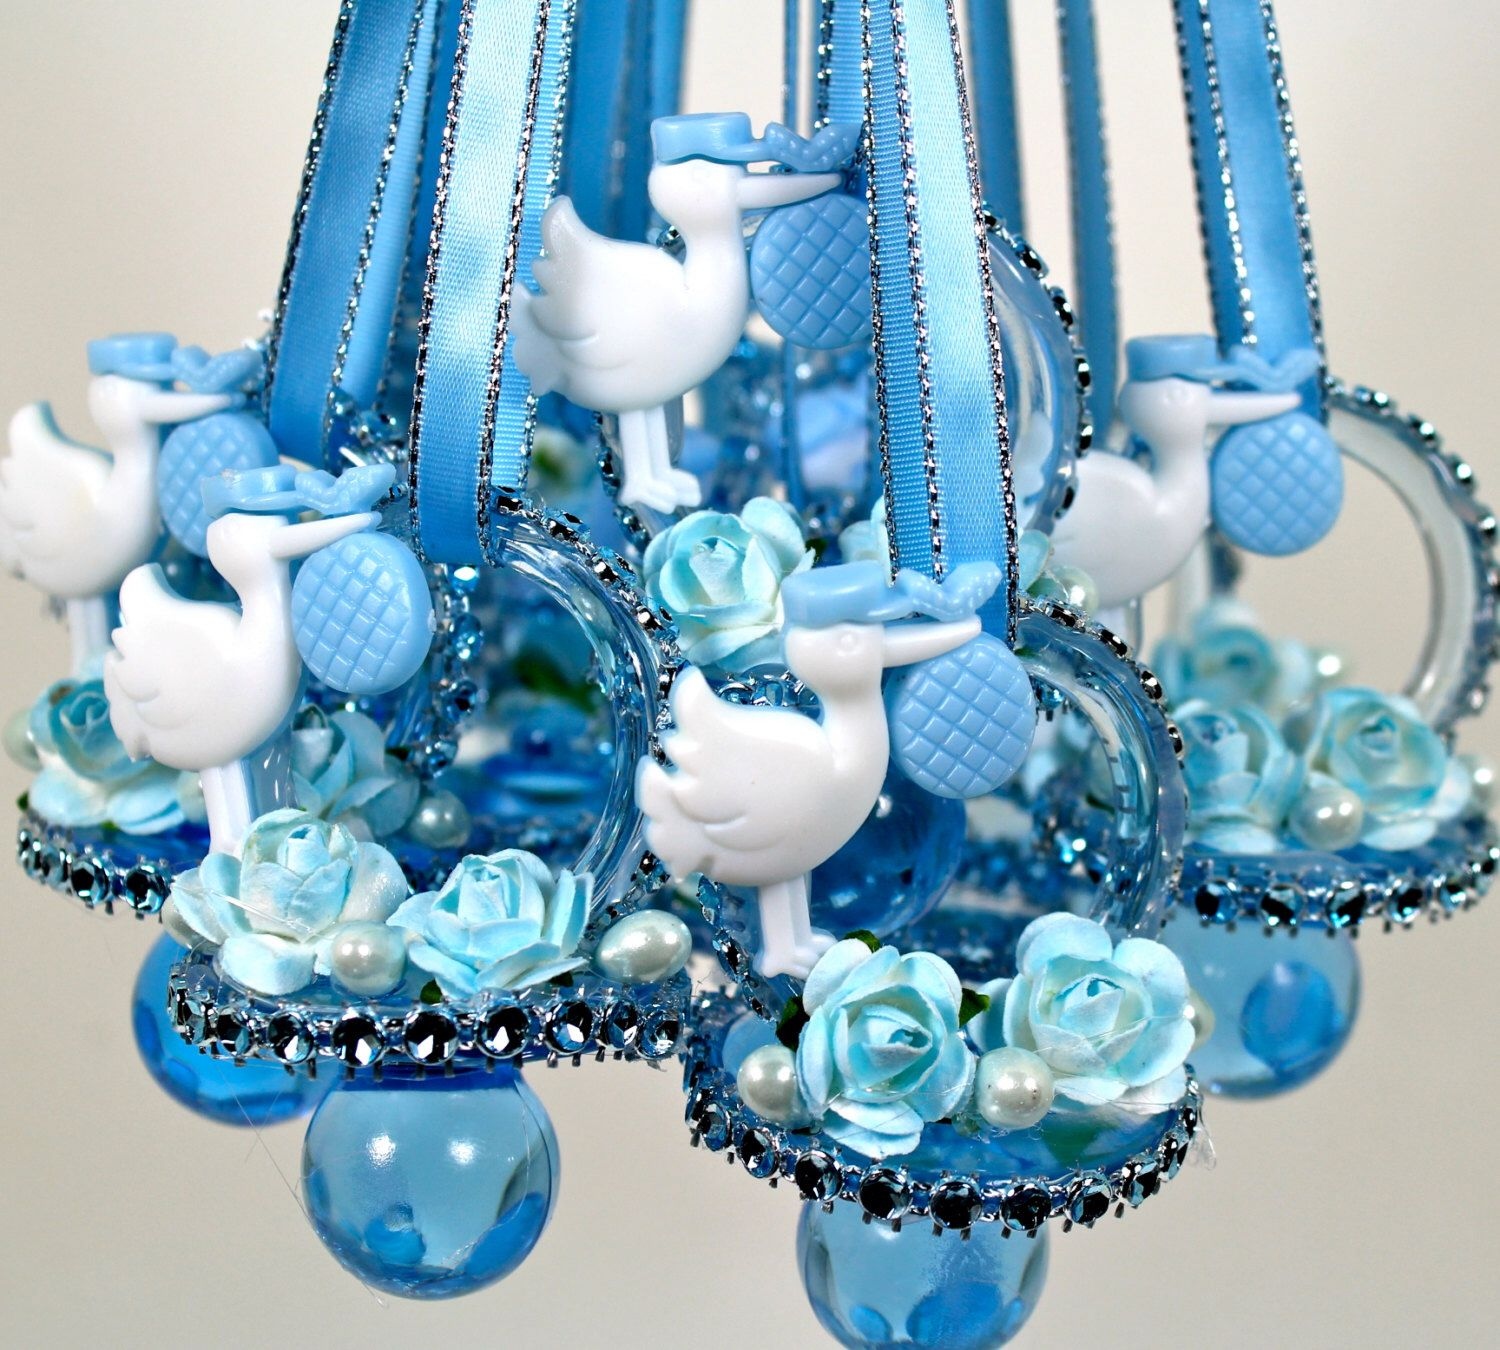 Blue Baby Shower Pacifiers Necklace (12 Pcs) / Baby Shower Games /  Rhinestone Mesh